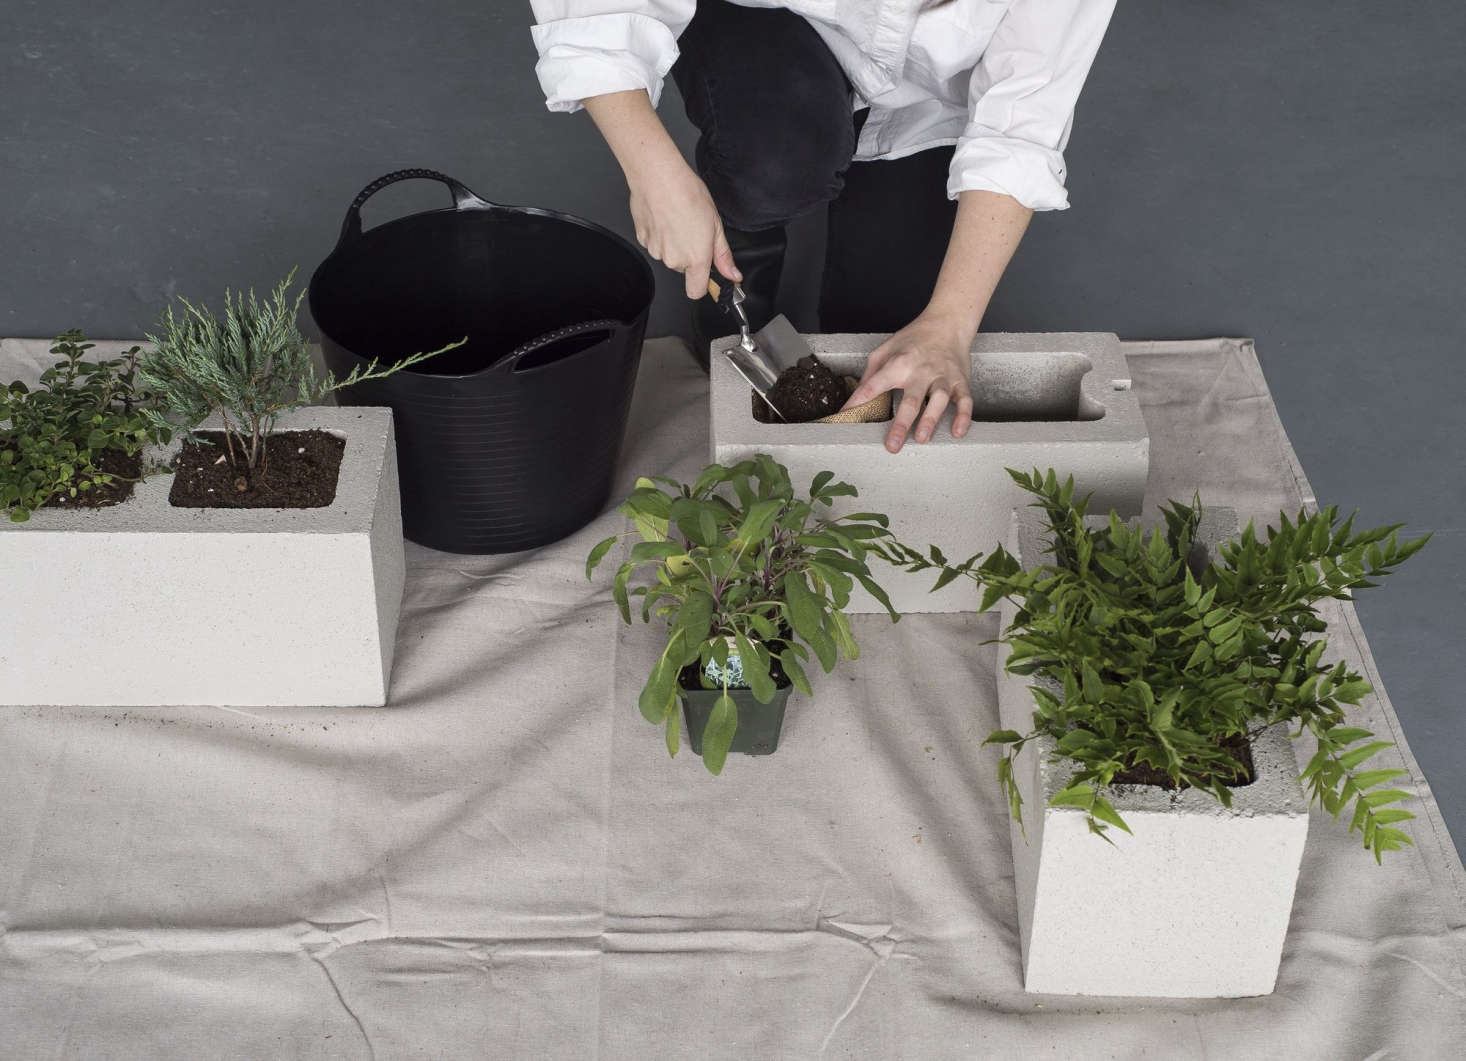 For step-by-step instructions to make DIY cinderblock planters, see our Gardenista Book.